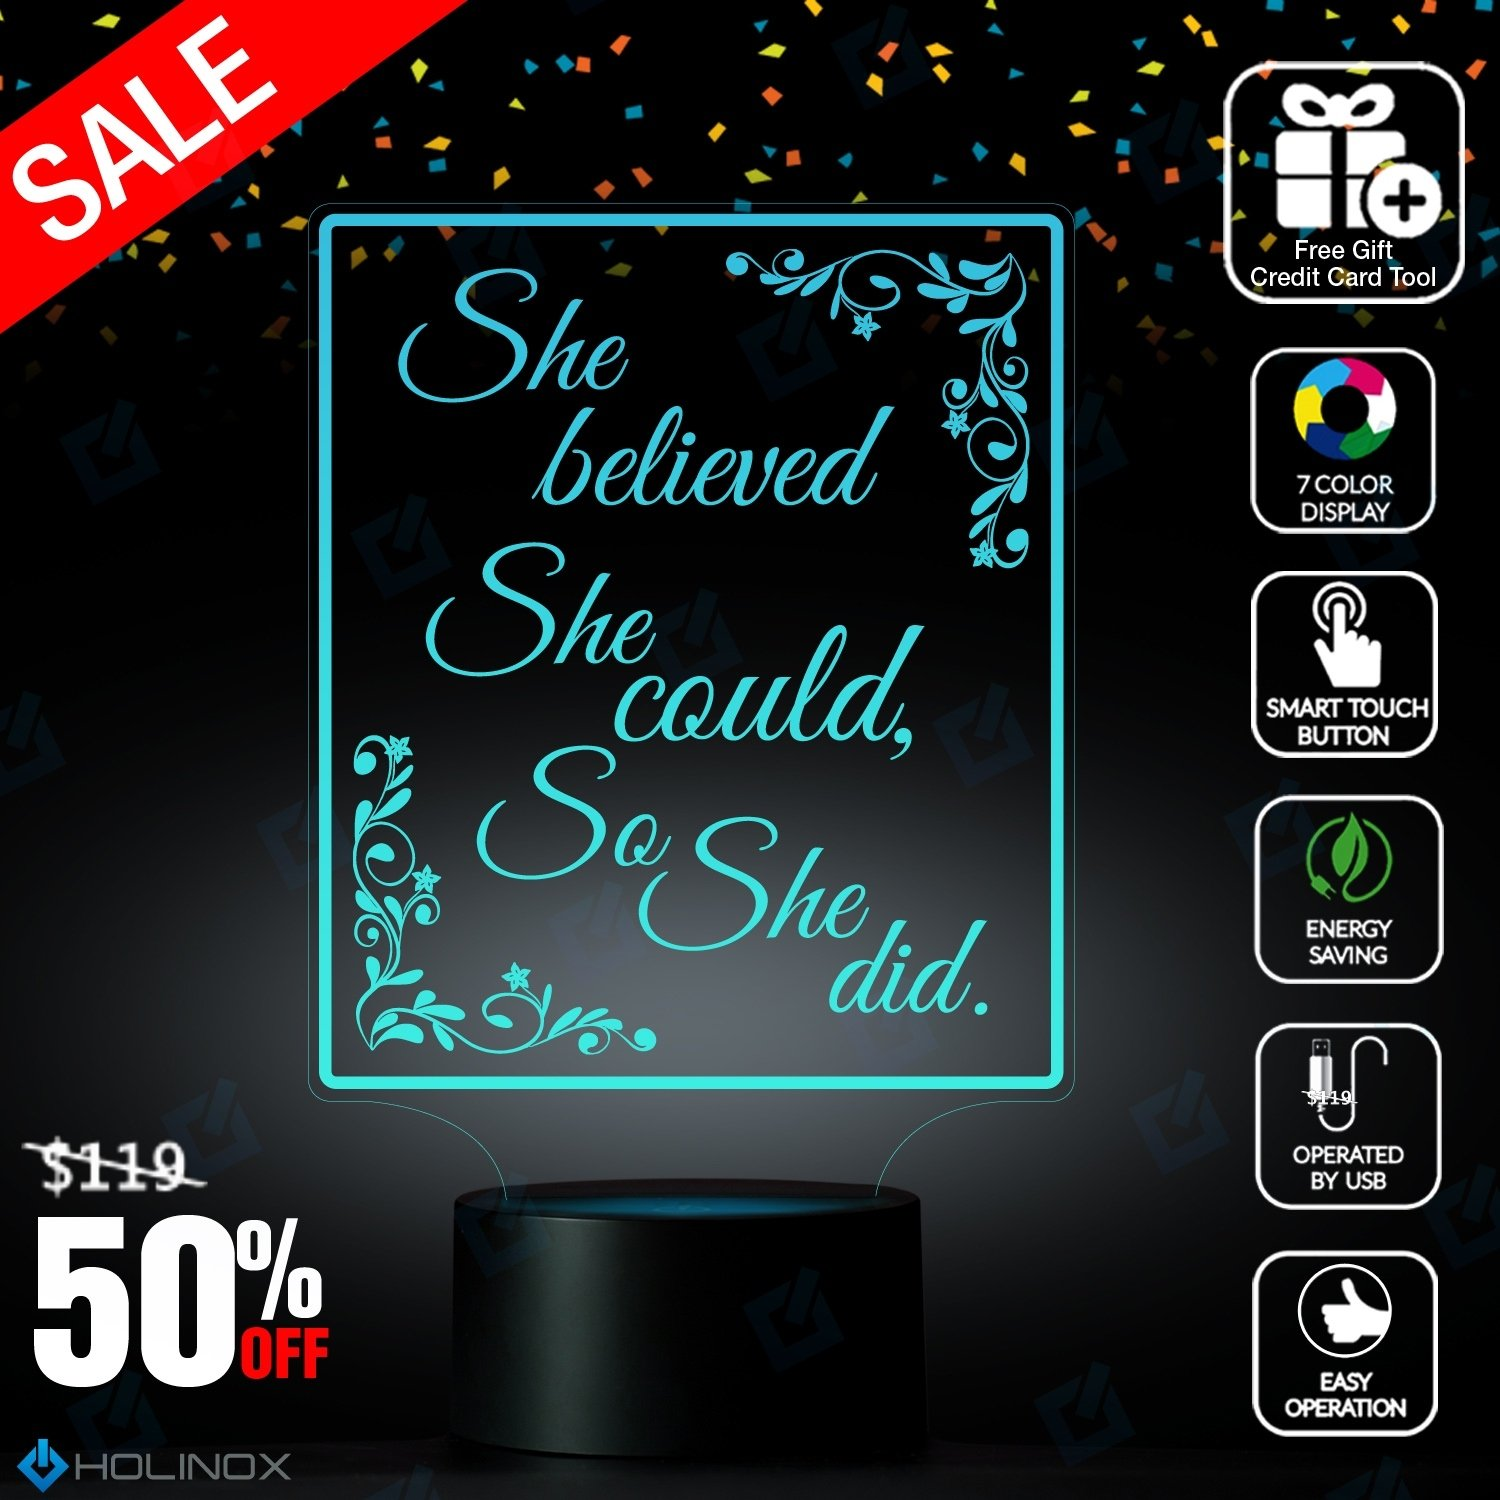 She Believed She Could So She Did, R.S Grey Quote, Scoring Wild quote, Graphic text, Decoration lamp, 7 Color Mode, Awesome gifts (MT218) by Holinox